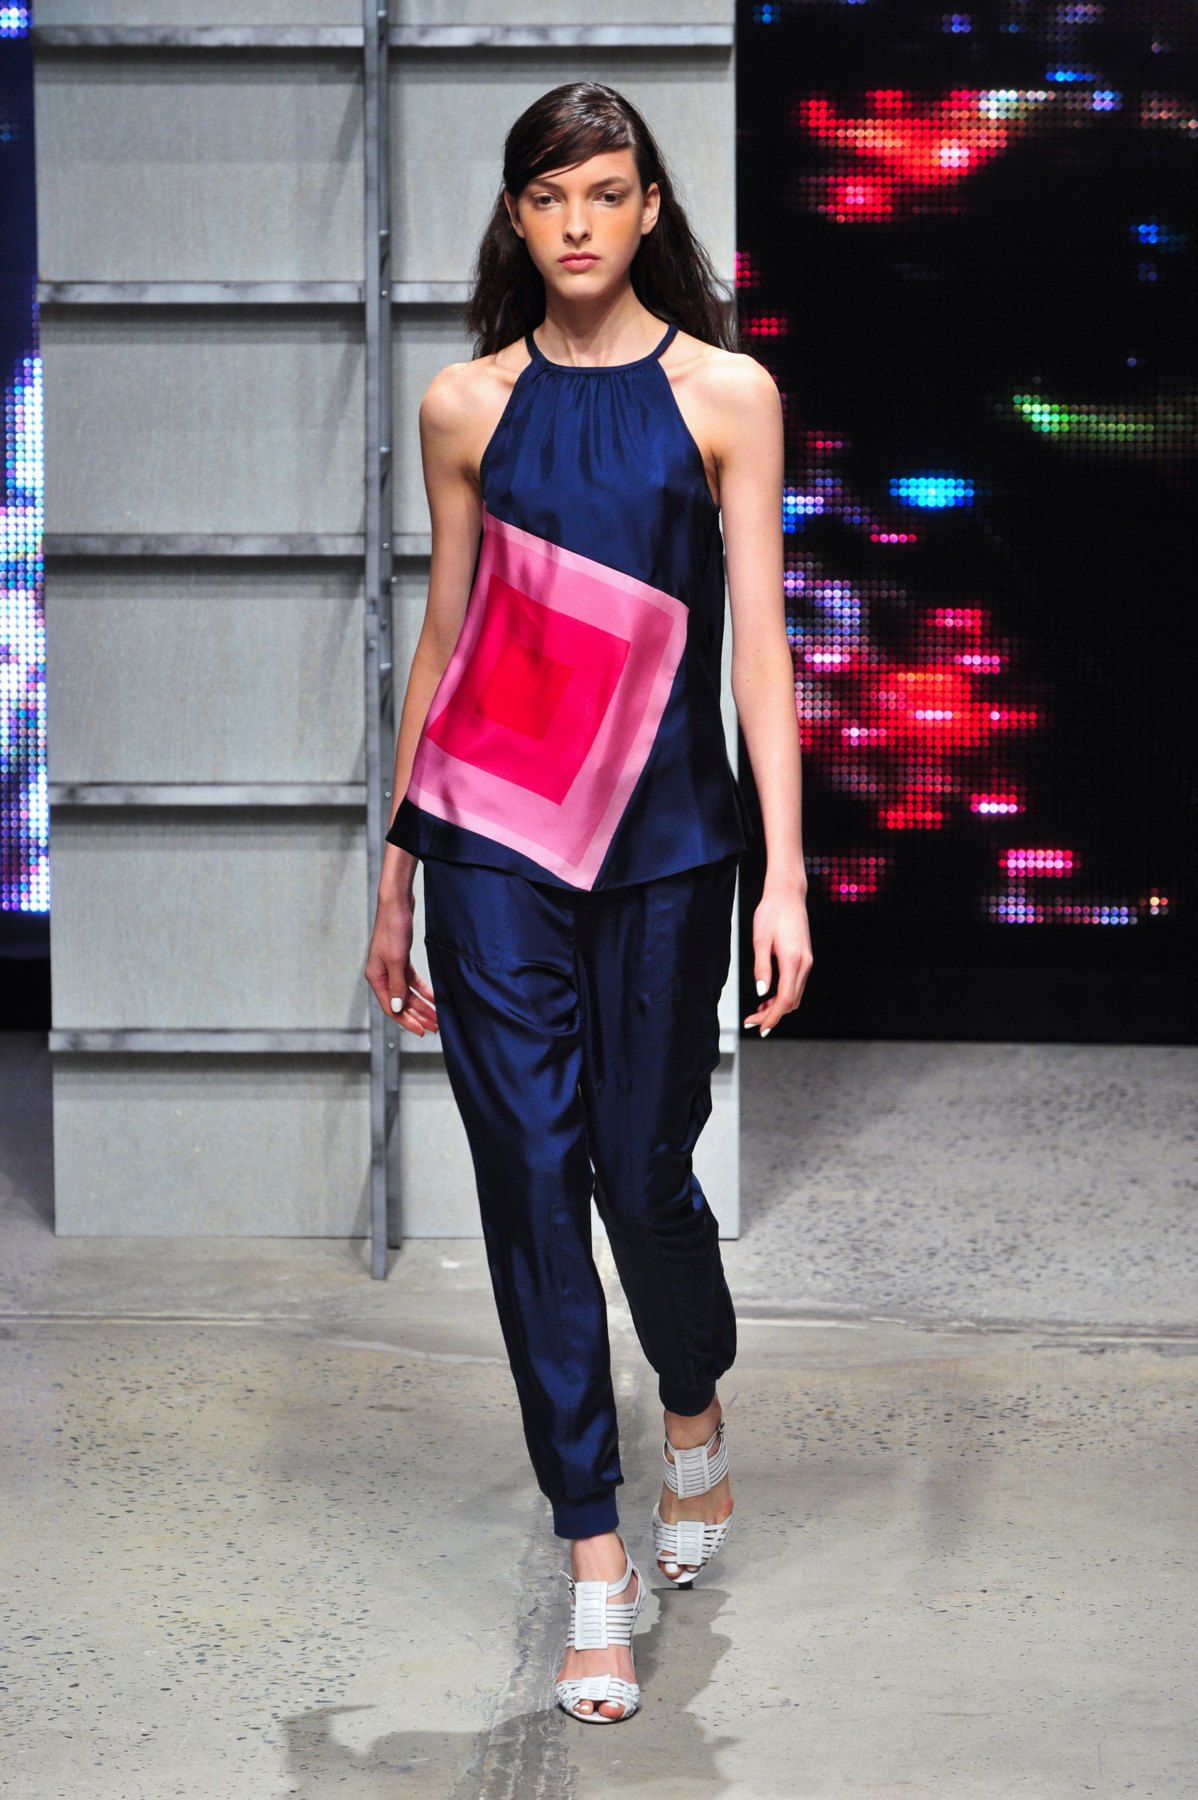 desfile-band-of-outsiders-nova-york-verao-2014-021